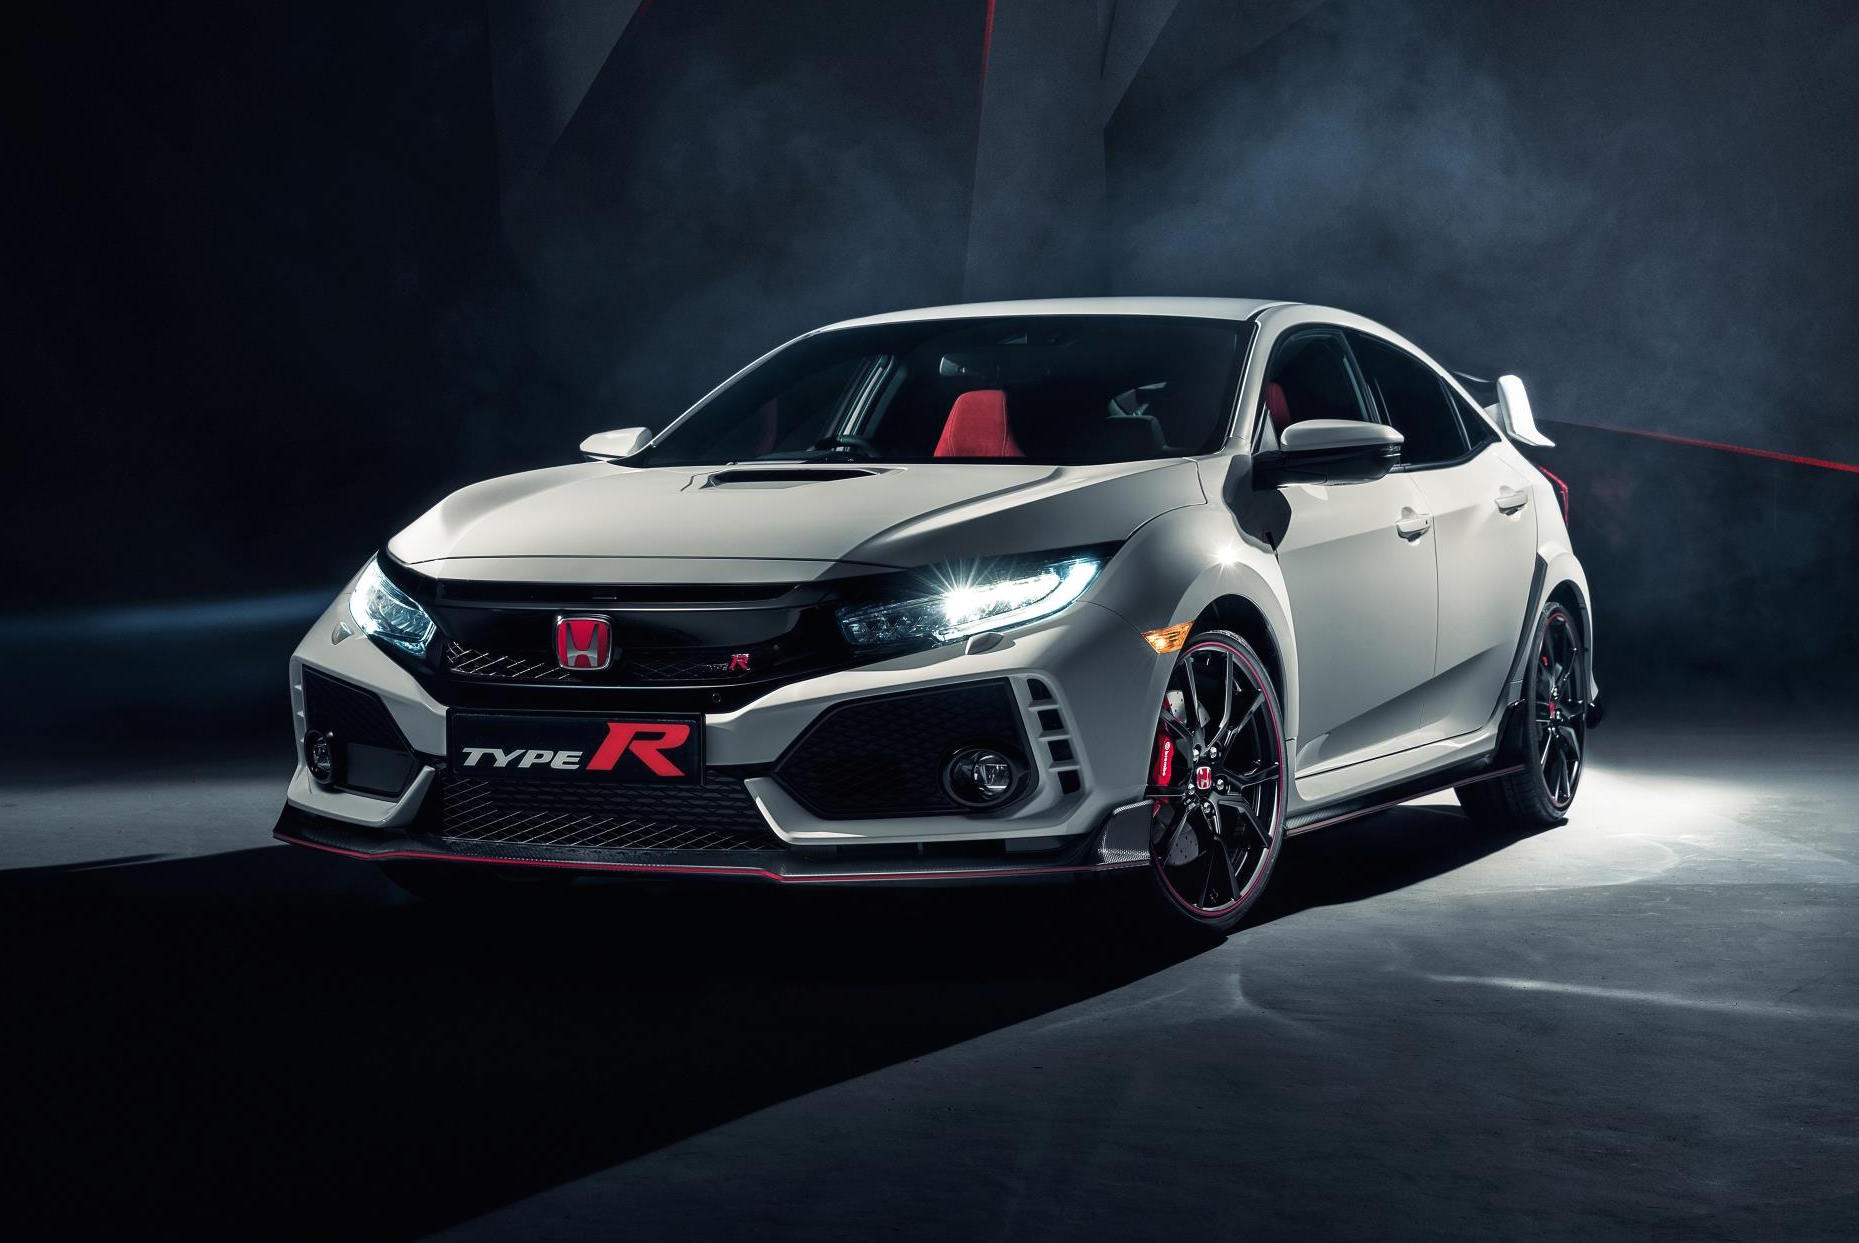 All lists of hot hatches include the Honda Civic Type R.